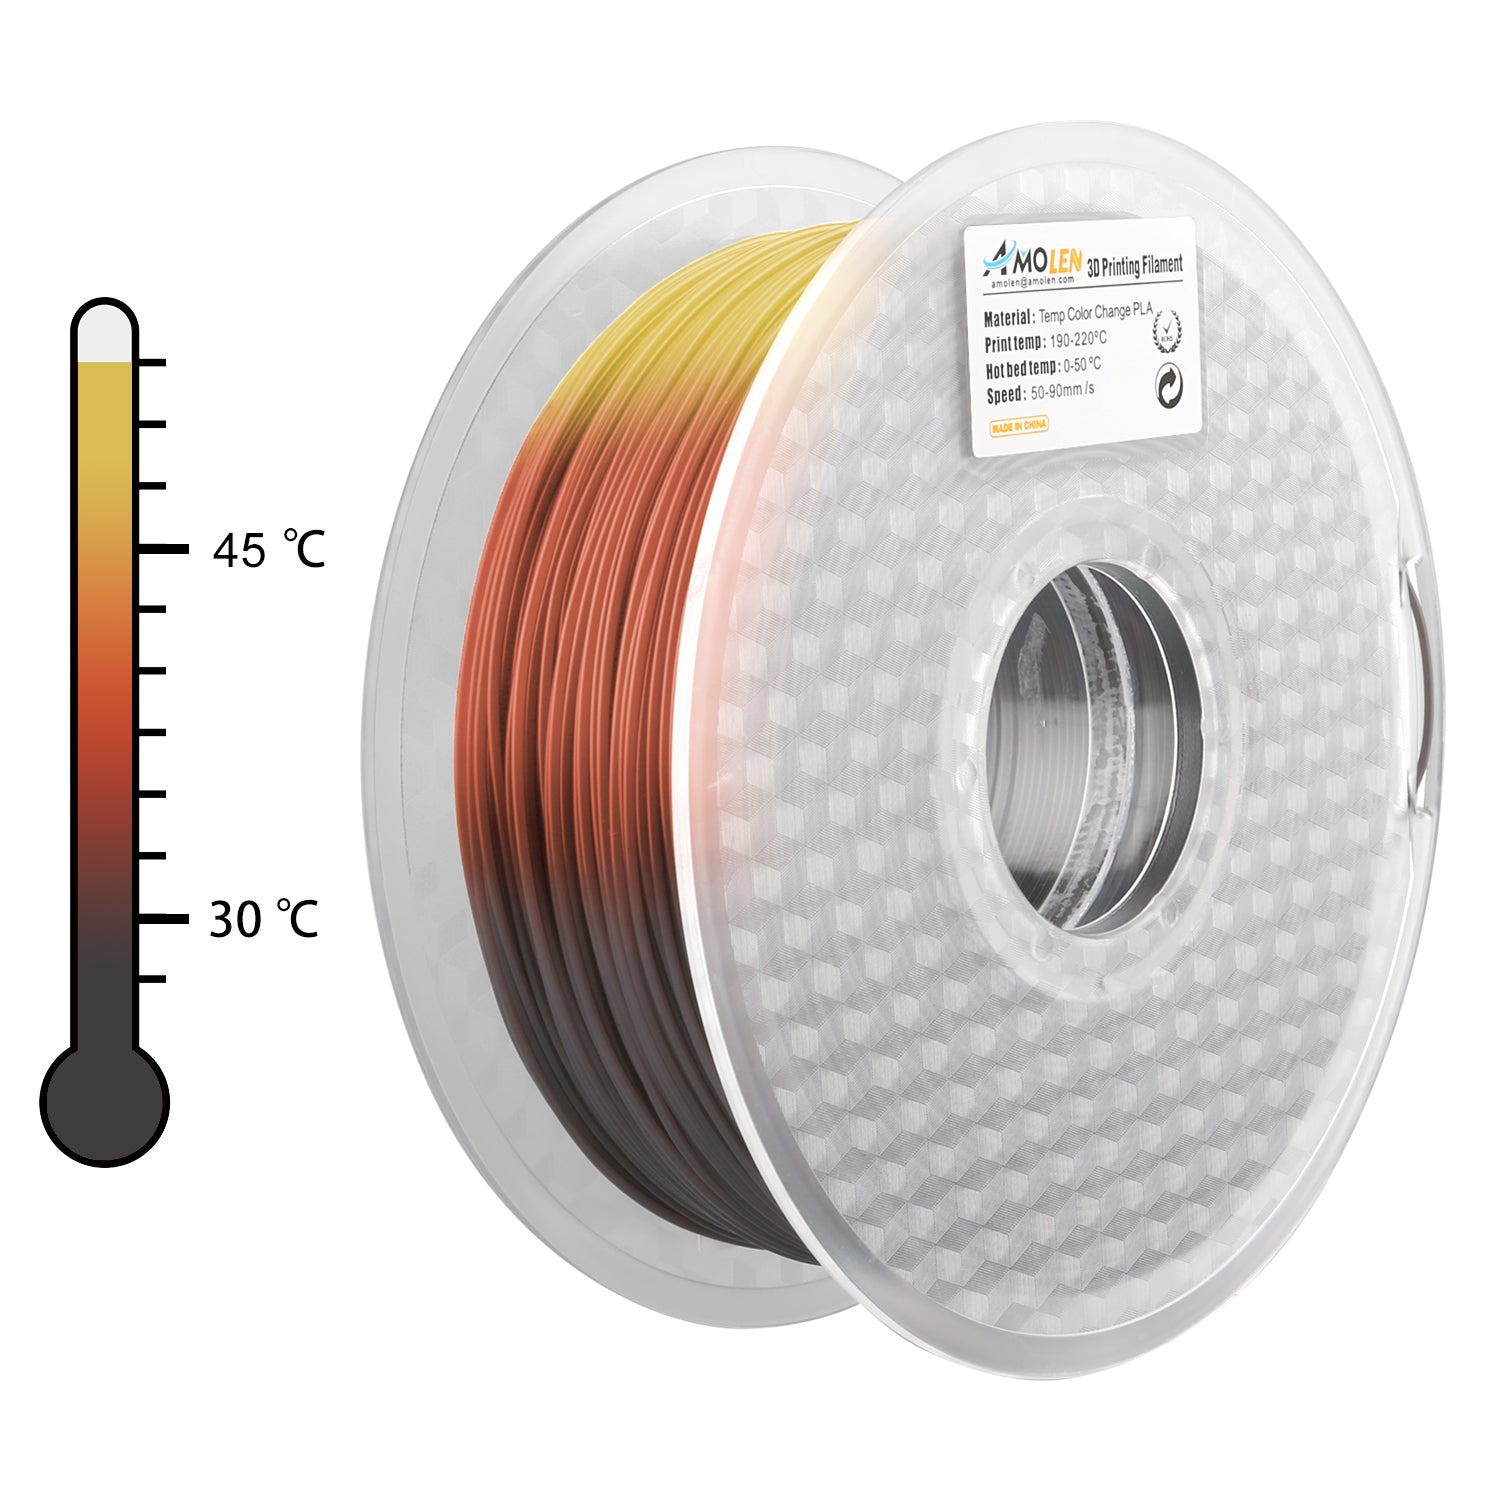 AMOLEN 3D Printer Filament, Tri Color Changing with TEMP, Pine  Green/Brown/Yellow 1 75mm+/-0 03, 2 2LB/1KG